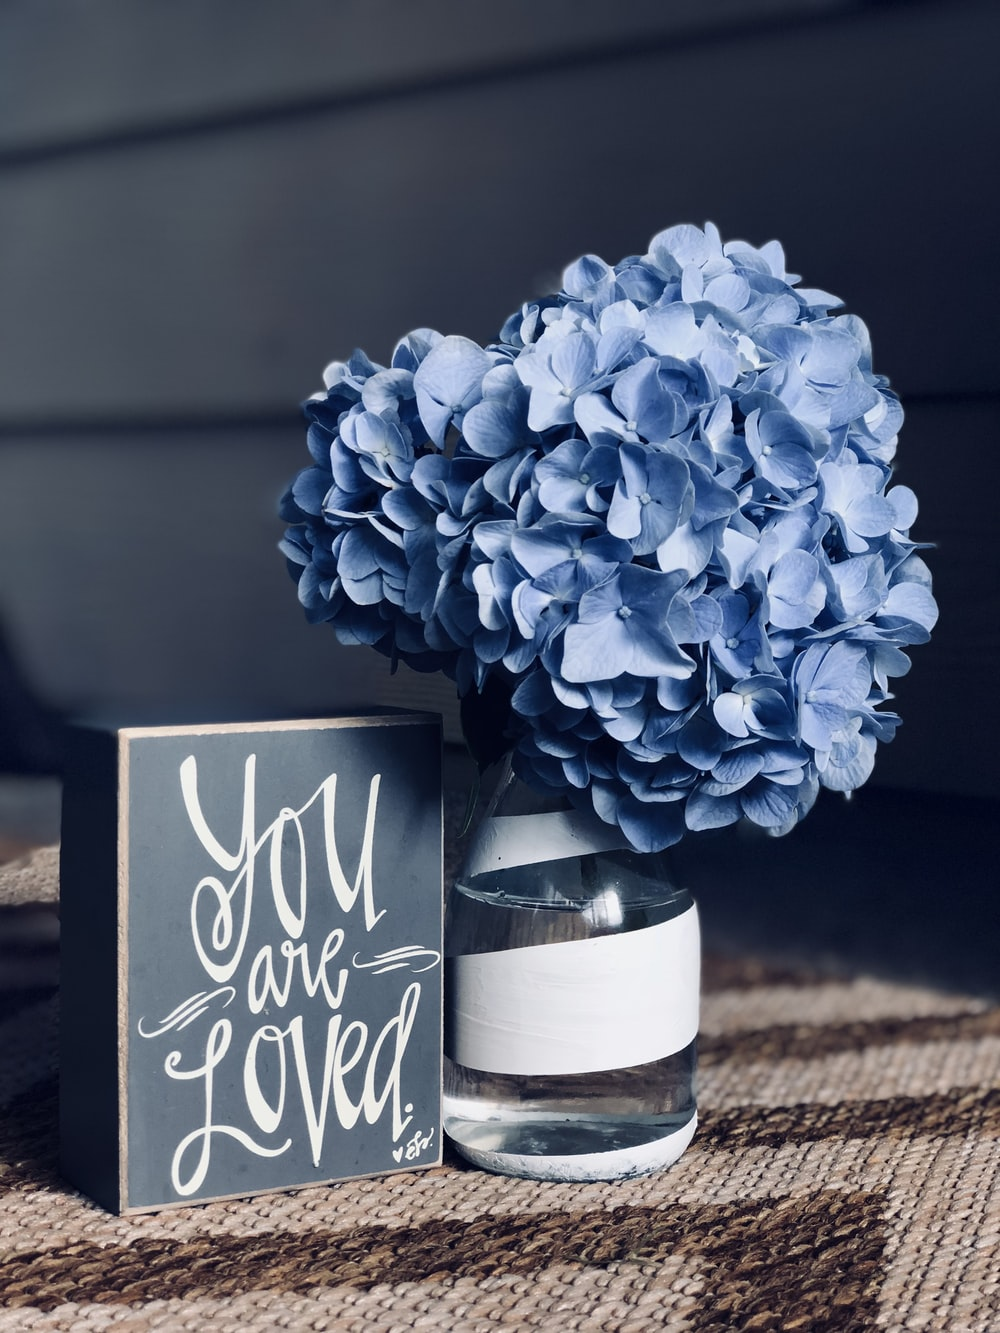 Hydrangea pictures hq download free images on unsplash blue flowers in glass vase izmirmasajfo